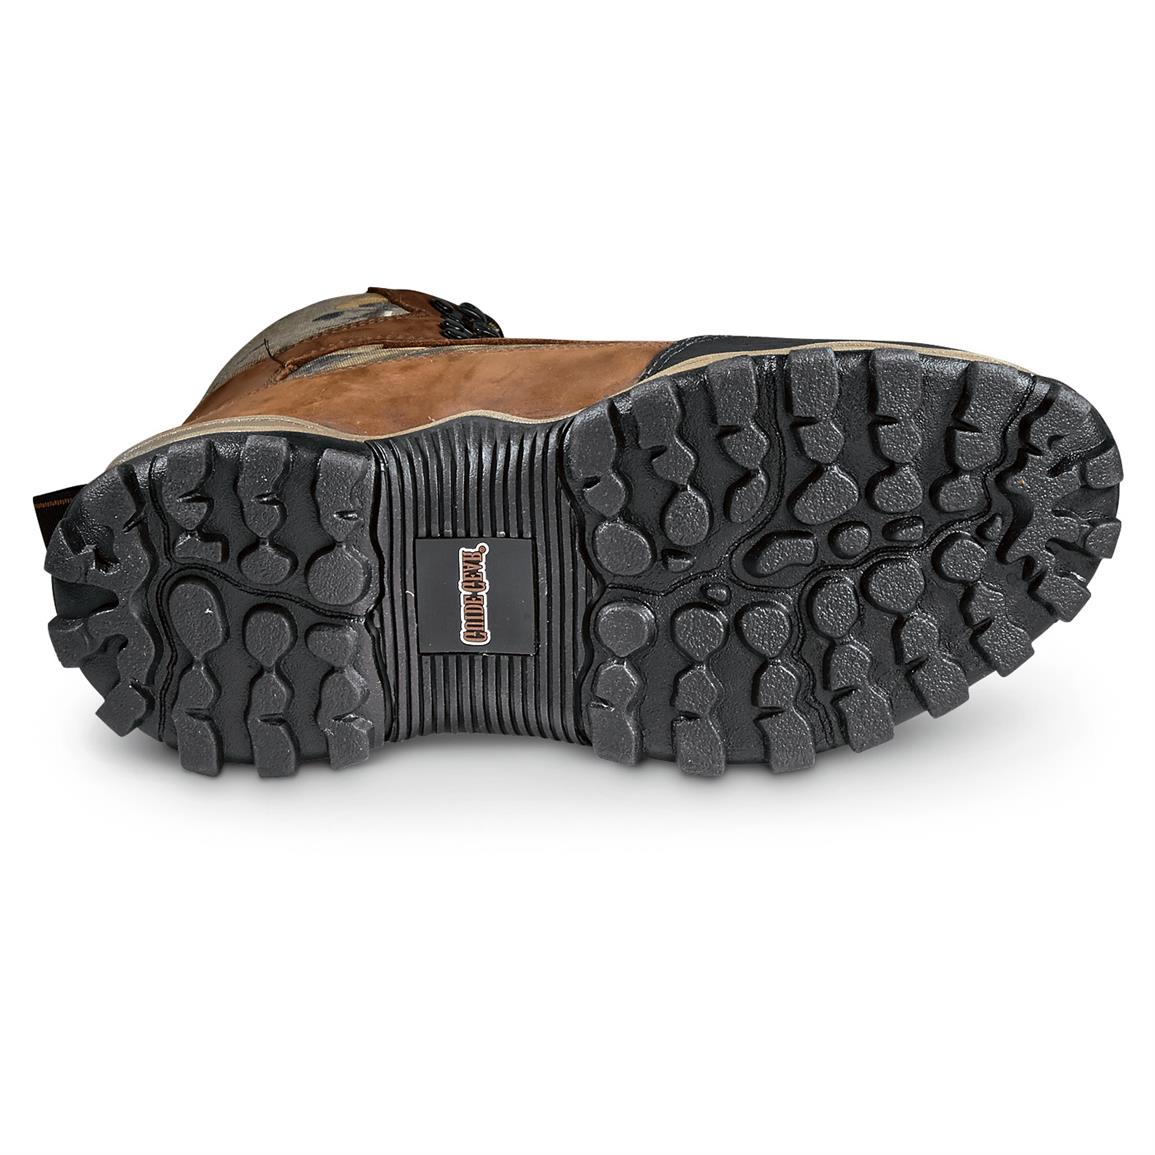 Rugged sure-grip outsole